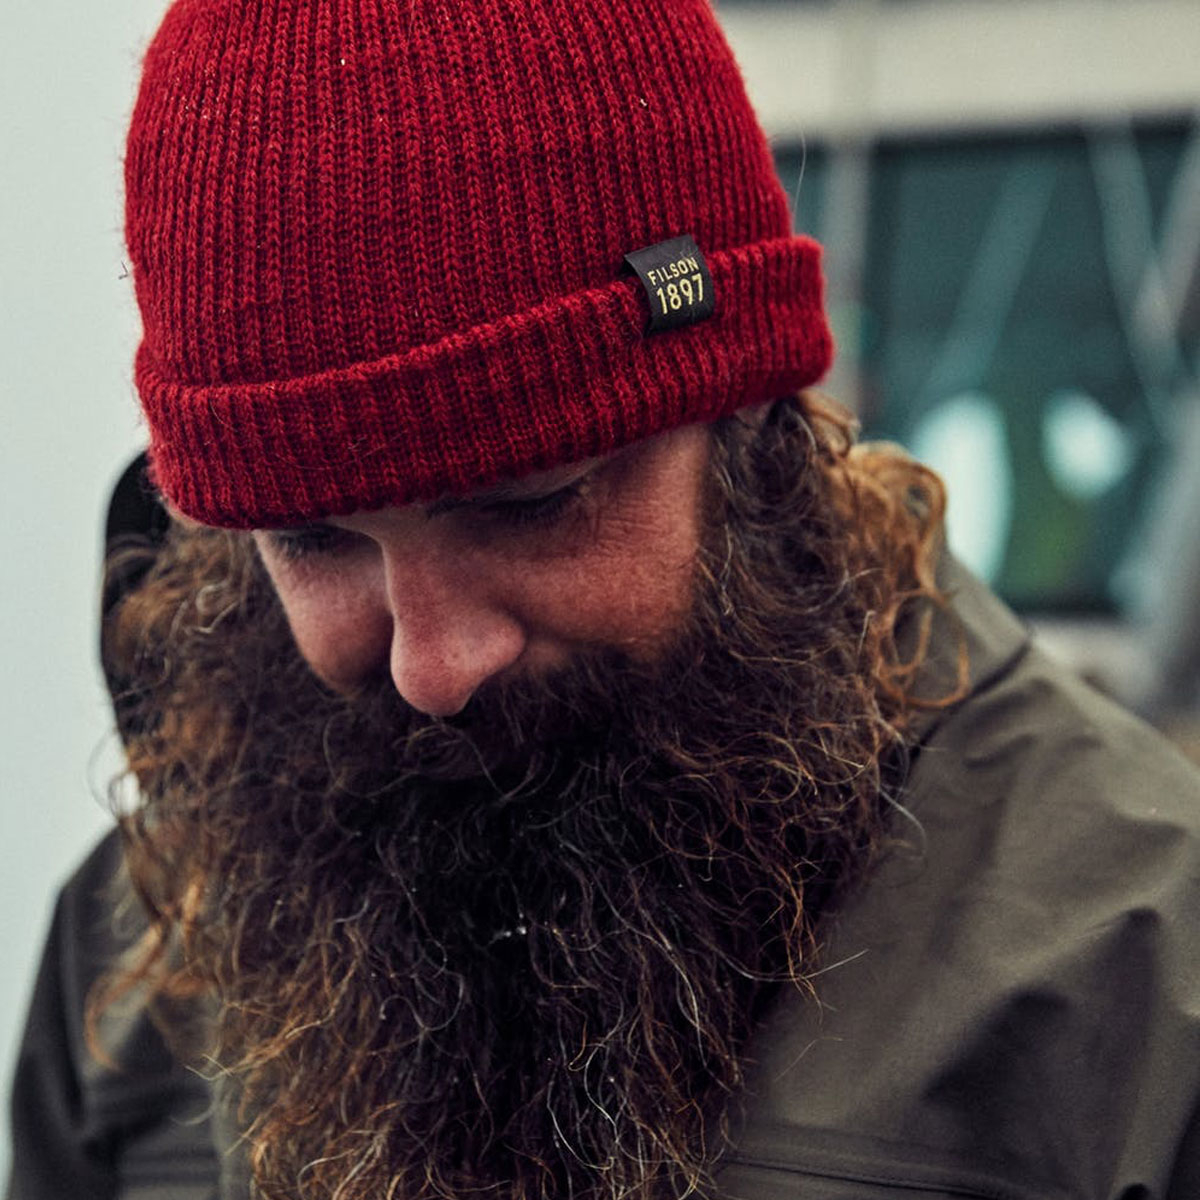 Filson Watch Cap Red, keeps your head and ears warm